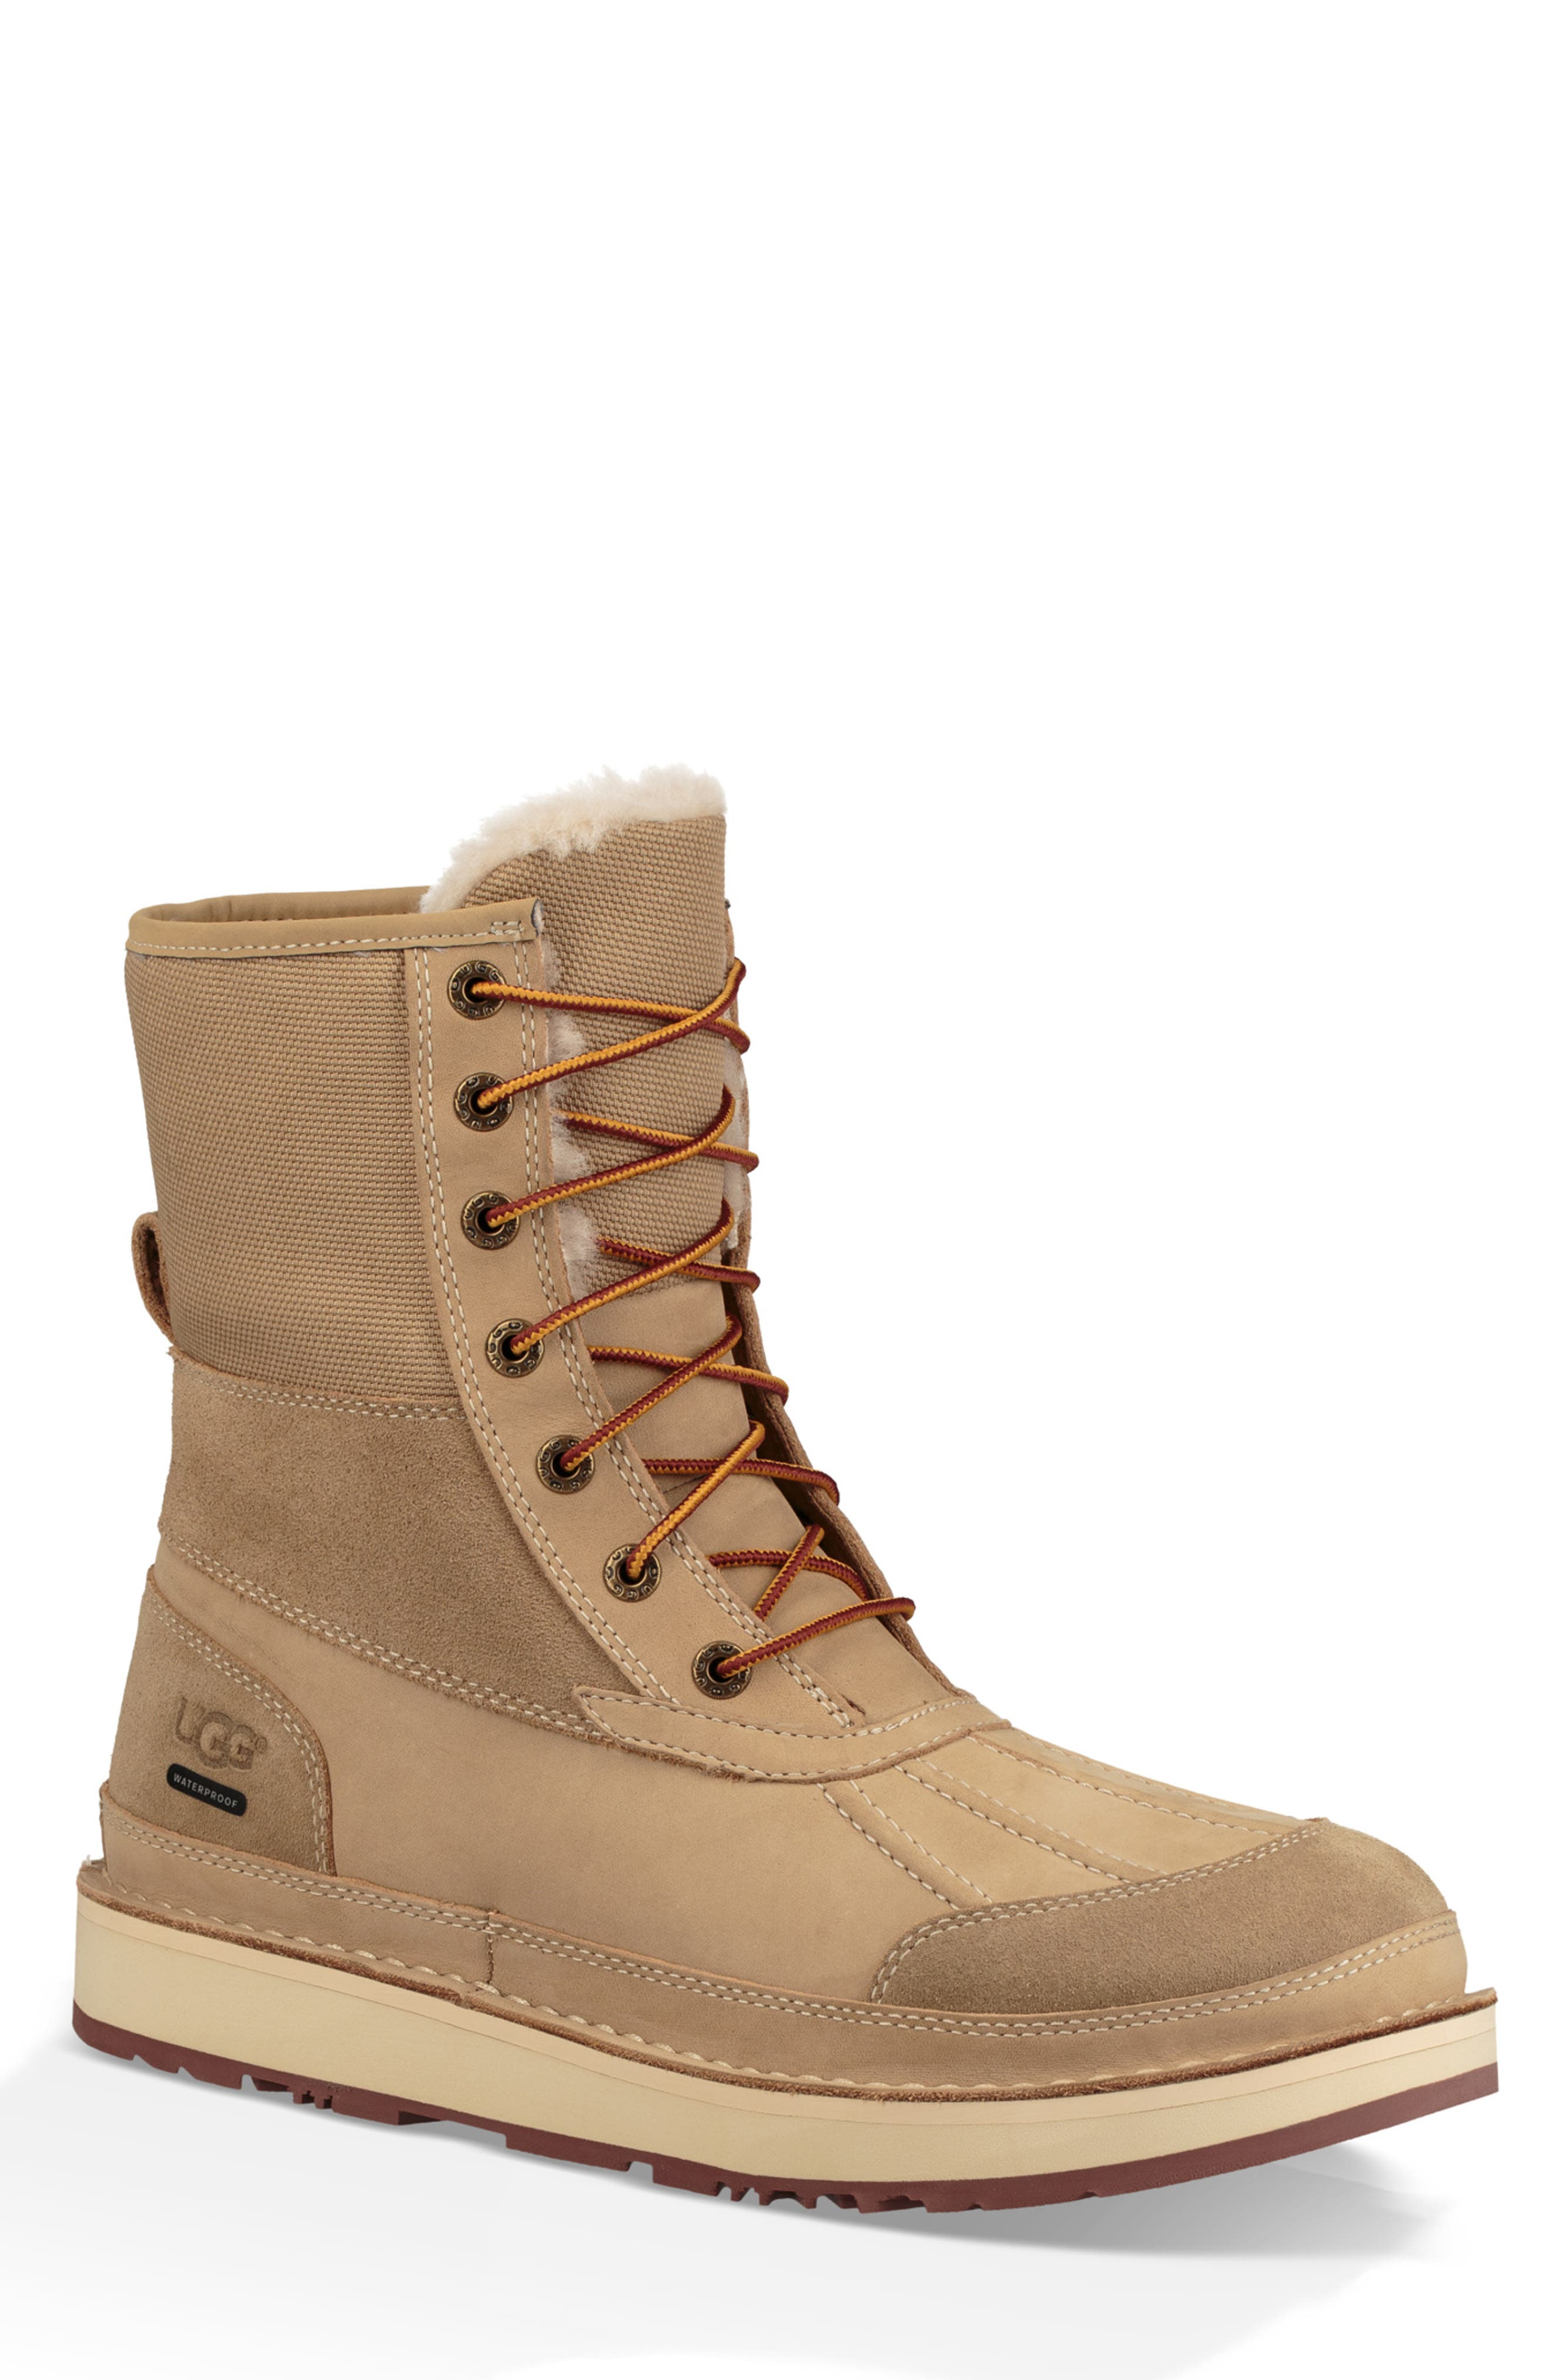 Avalanche Butte Waterproof Boot,                         Main,                         color, DESERT TAN